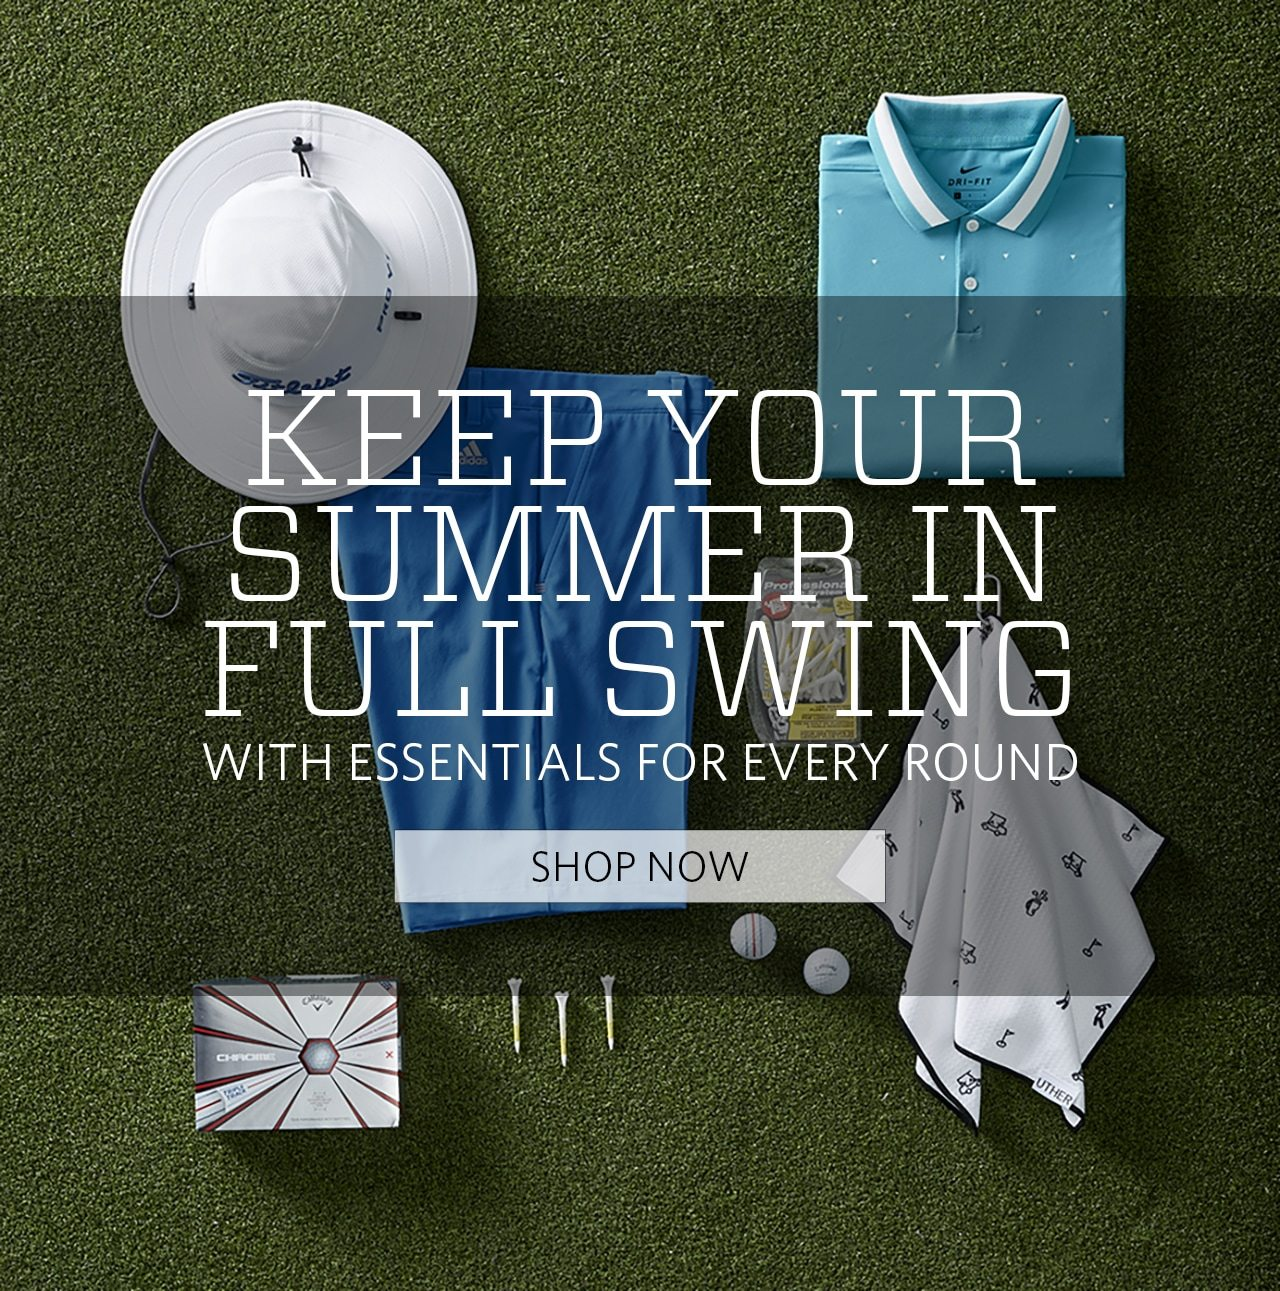 Keep Your Summer In Full Swing With Essentials For Every Round. Shop Now.